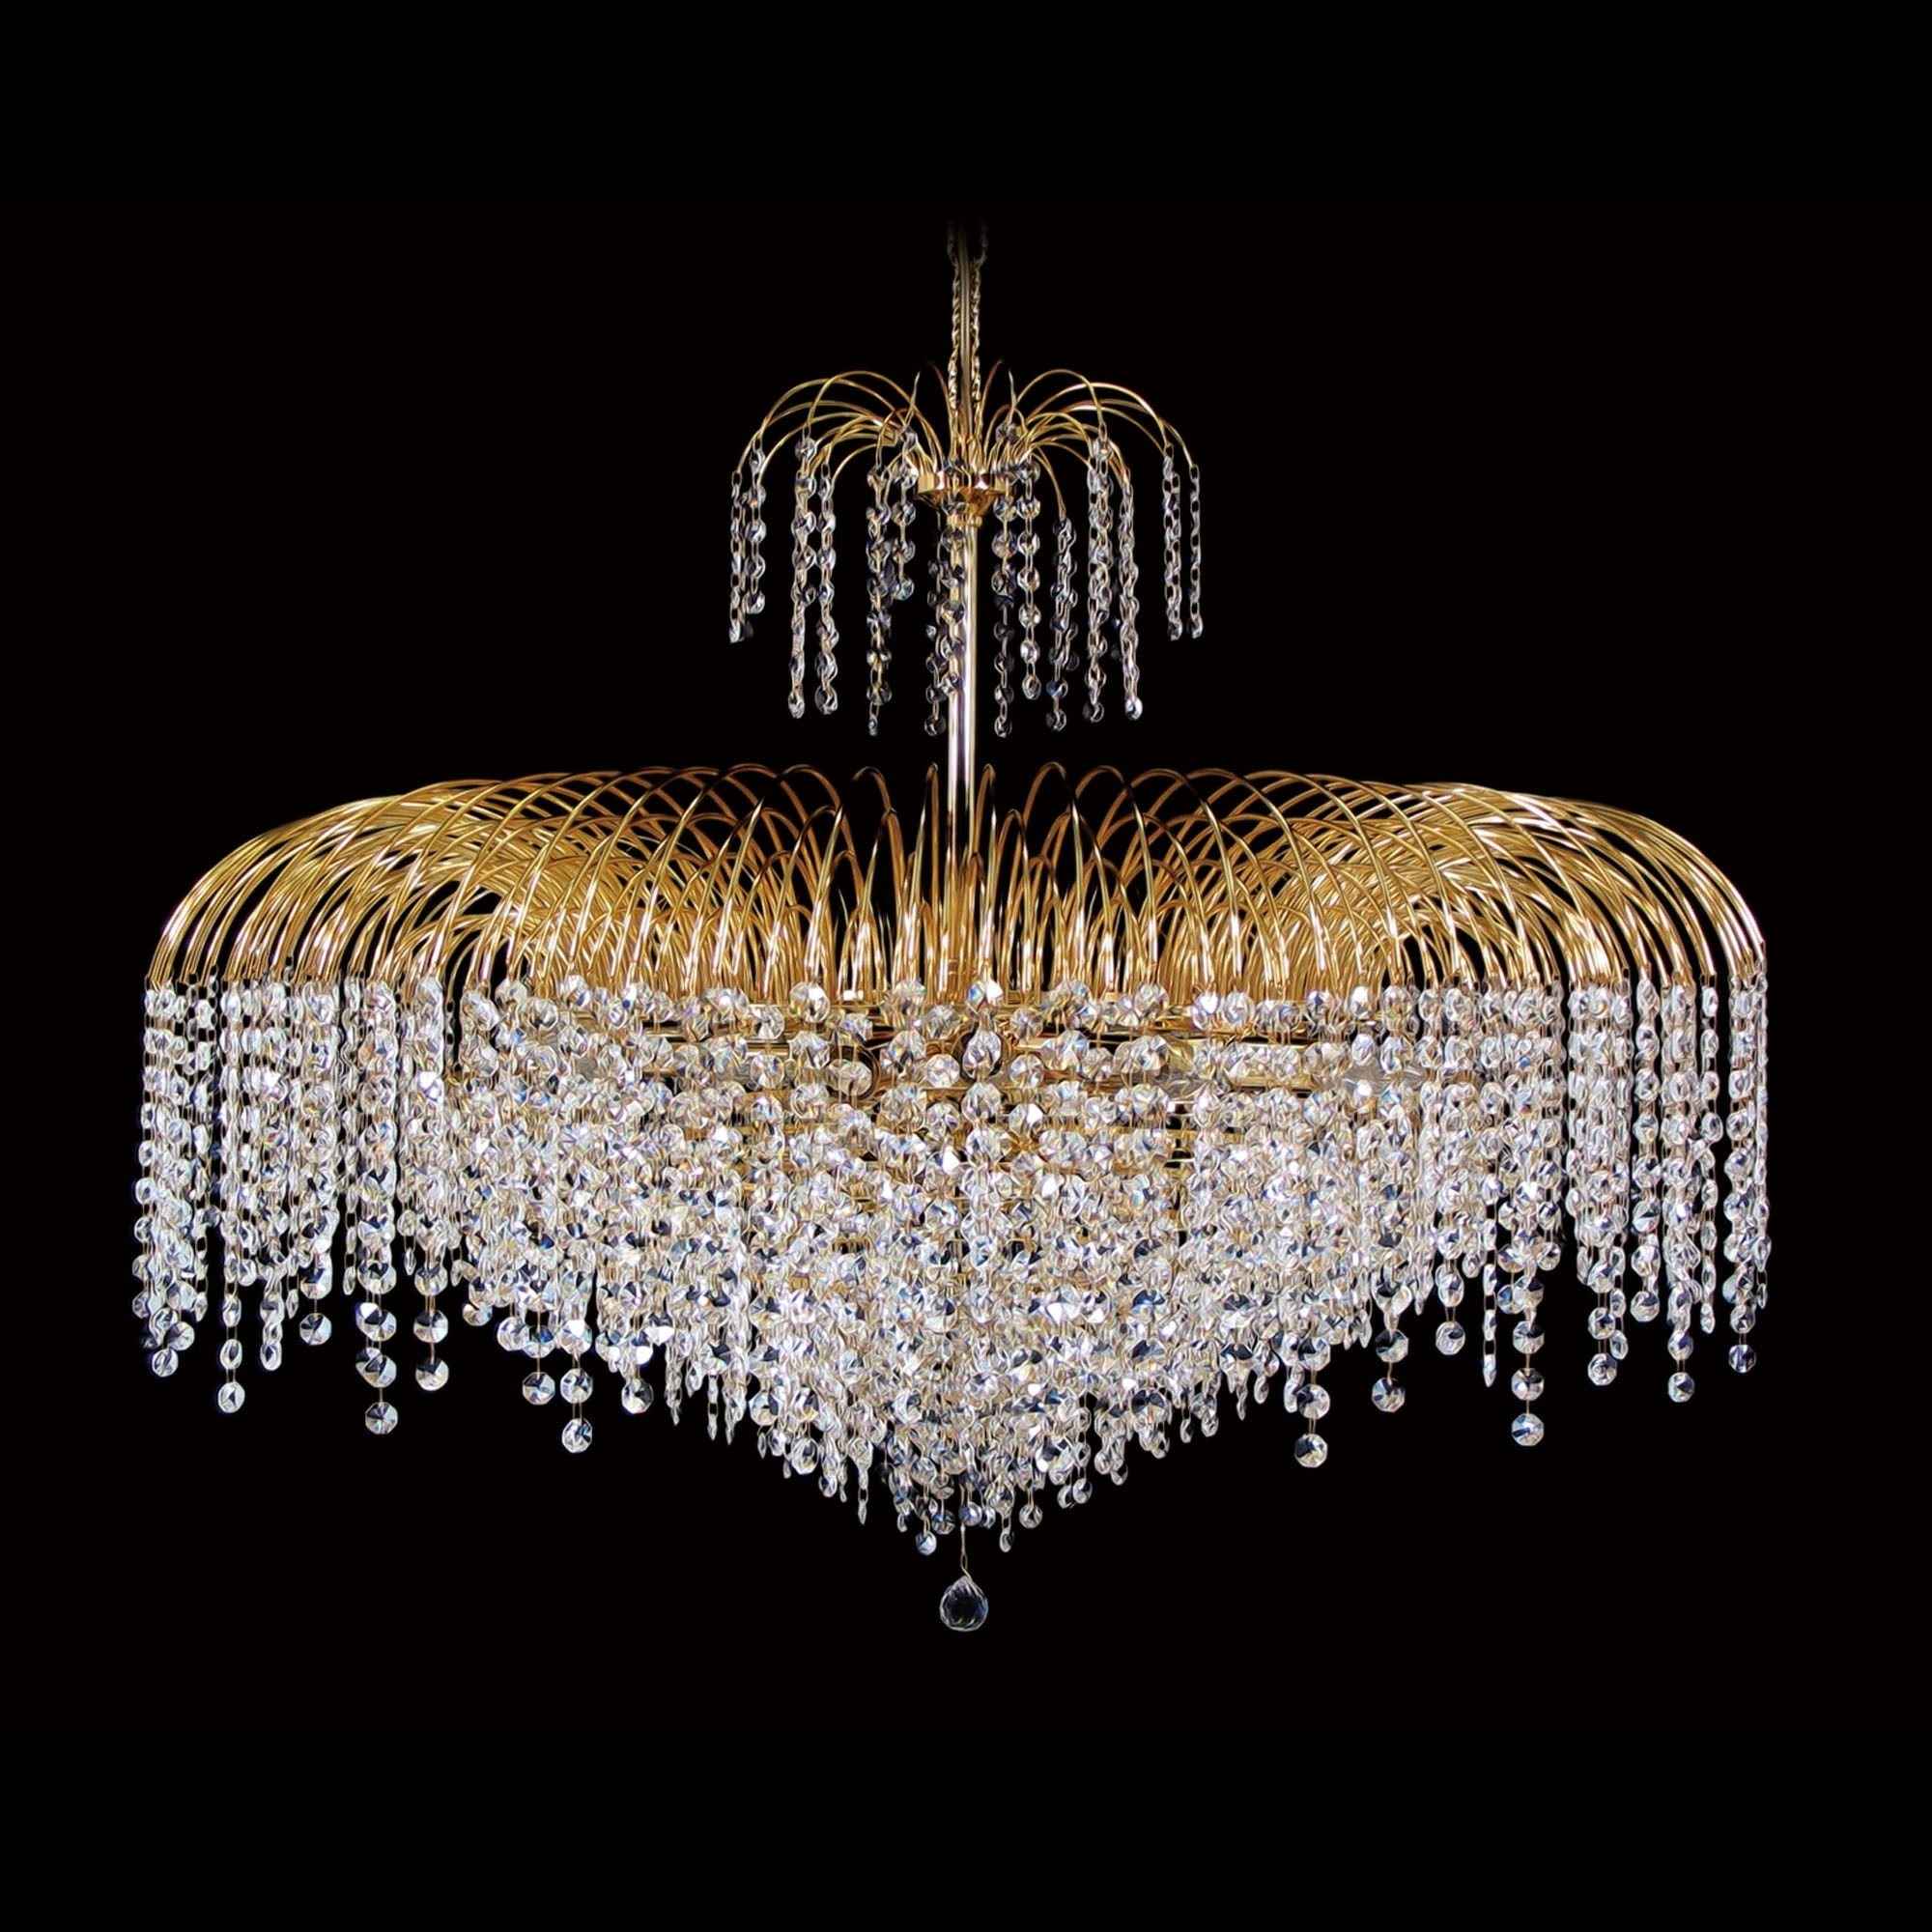 """15 Light – 32"""" Asfour Lead Crystal 24Ct Gold Plated Waterfall Throughout 2017 Crystal Waterfall Chandelier (View 11 of 15)"""